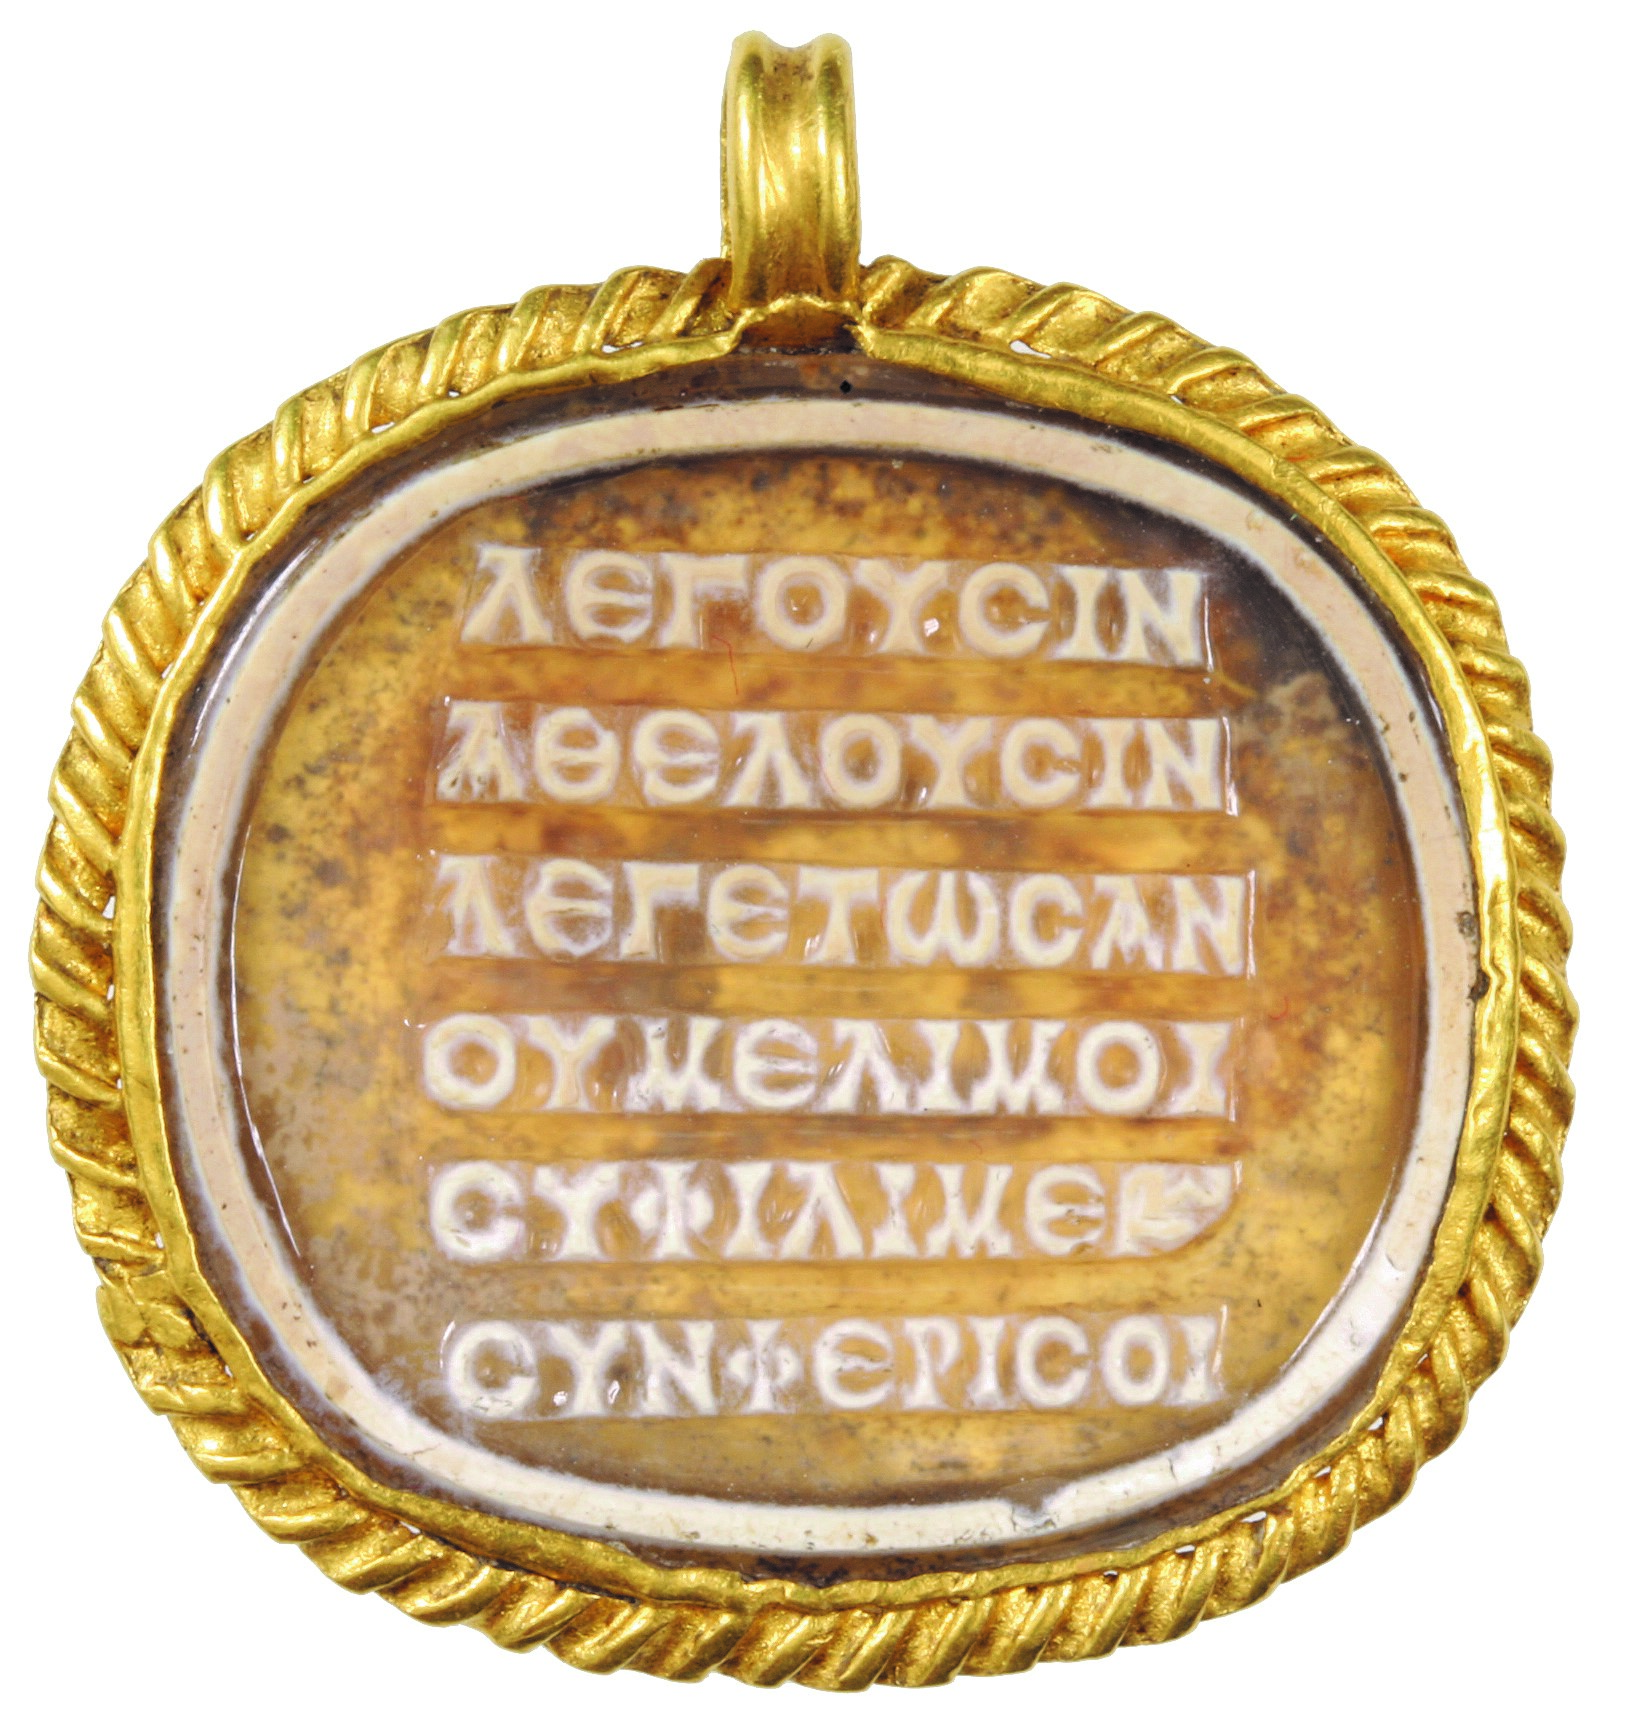 The poem inscribed on a cameo on a medallion of glass paste (2nd to 3rd century CE) found in a sarcophagus around the neck of a deceased young woman in what is now Hungary. Image courtesy: BHM Aquincum Museum and Archaeological Park / Péter Komjáthy